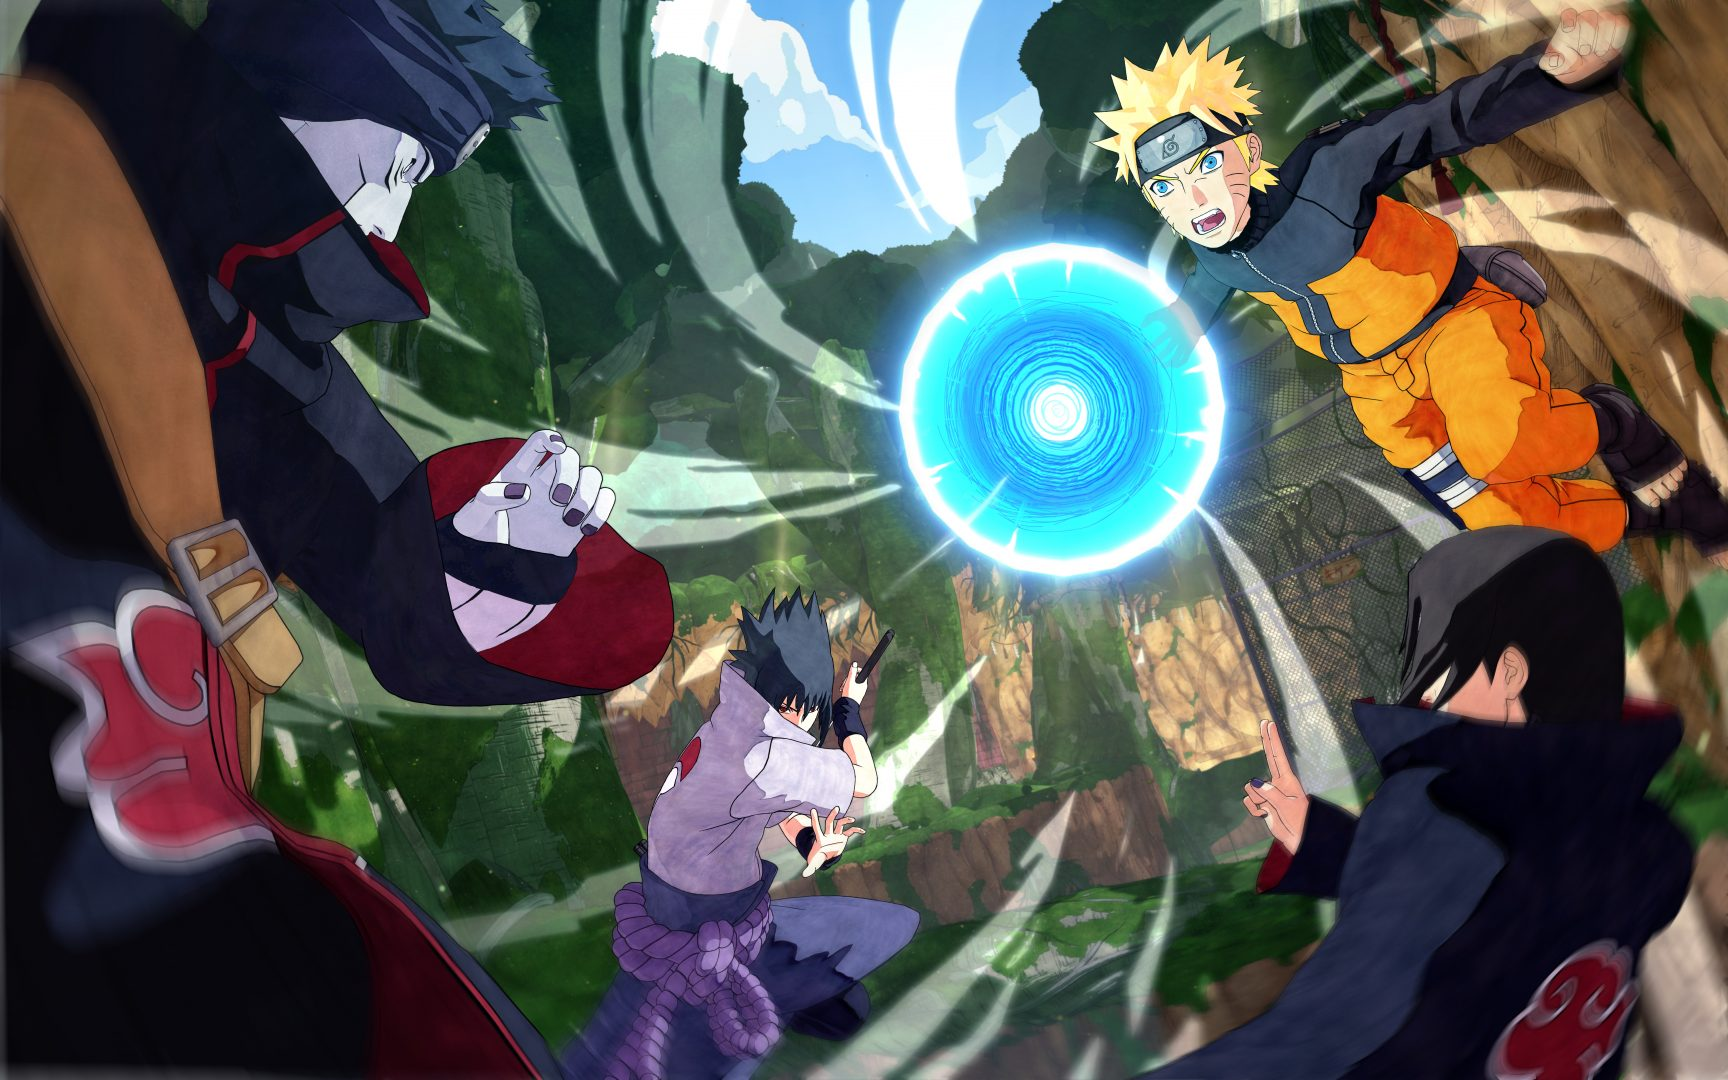 Get Ready for 4 vs 4 Ninja Battles in Naruto to Boruto: Shinobi Striker